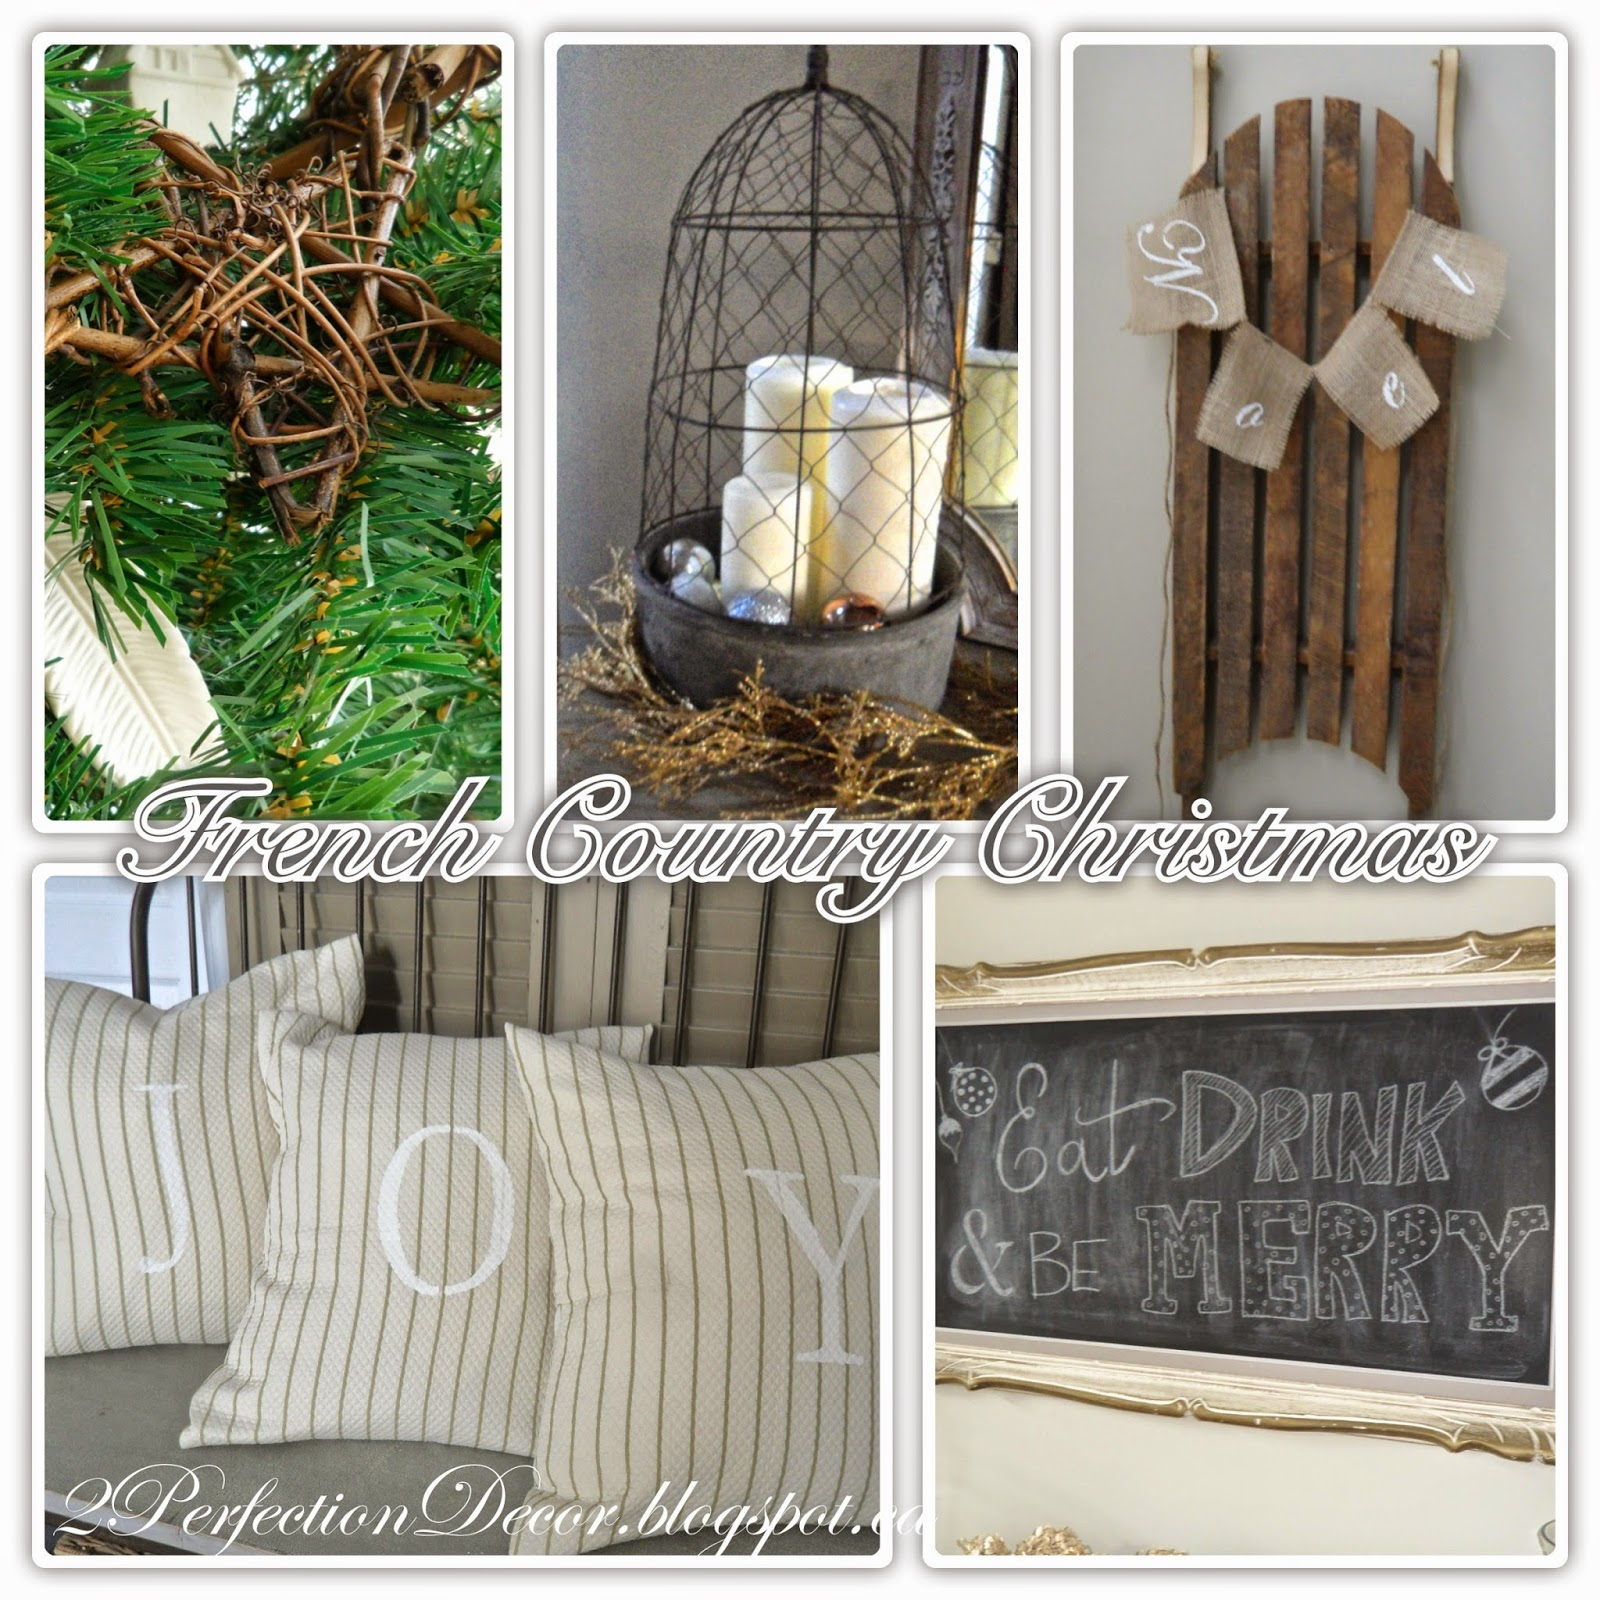 2perfectiondecorxmas preview1jpg - French Country Christmas Decor